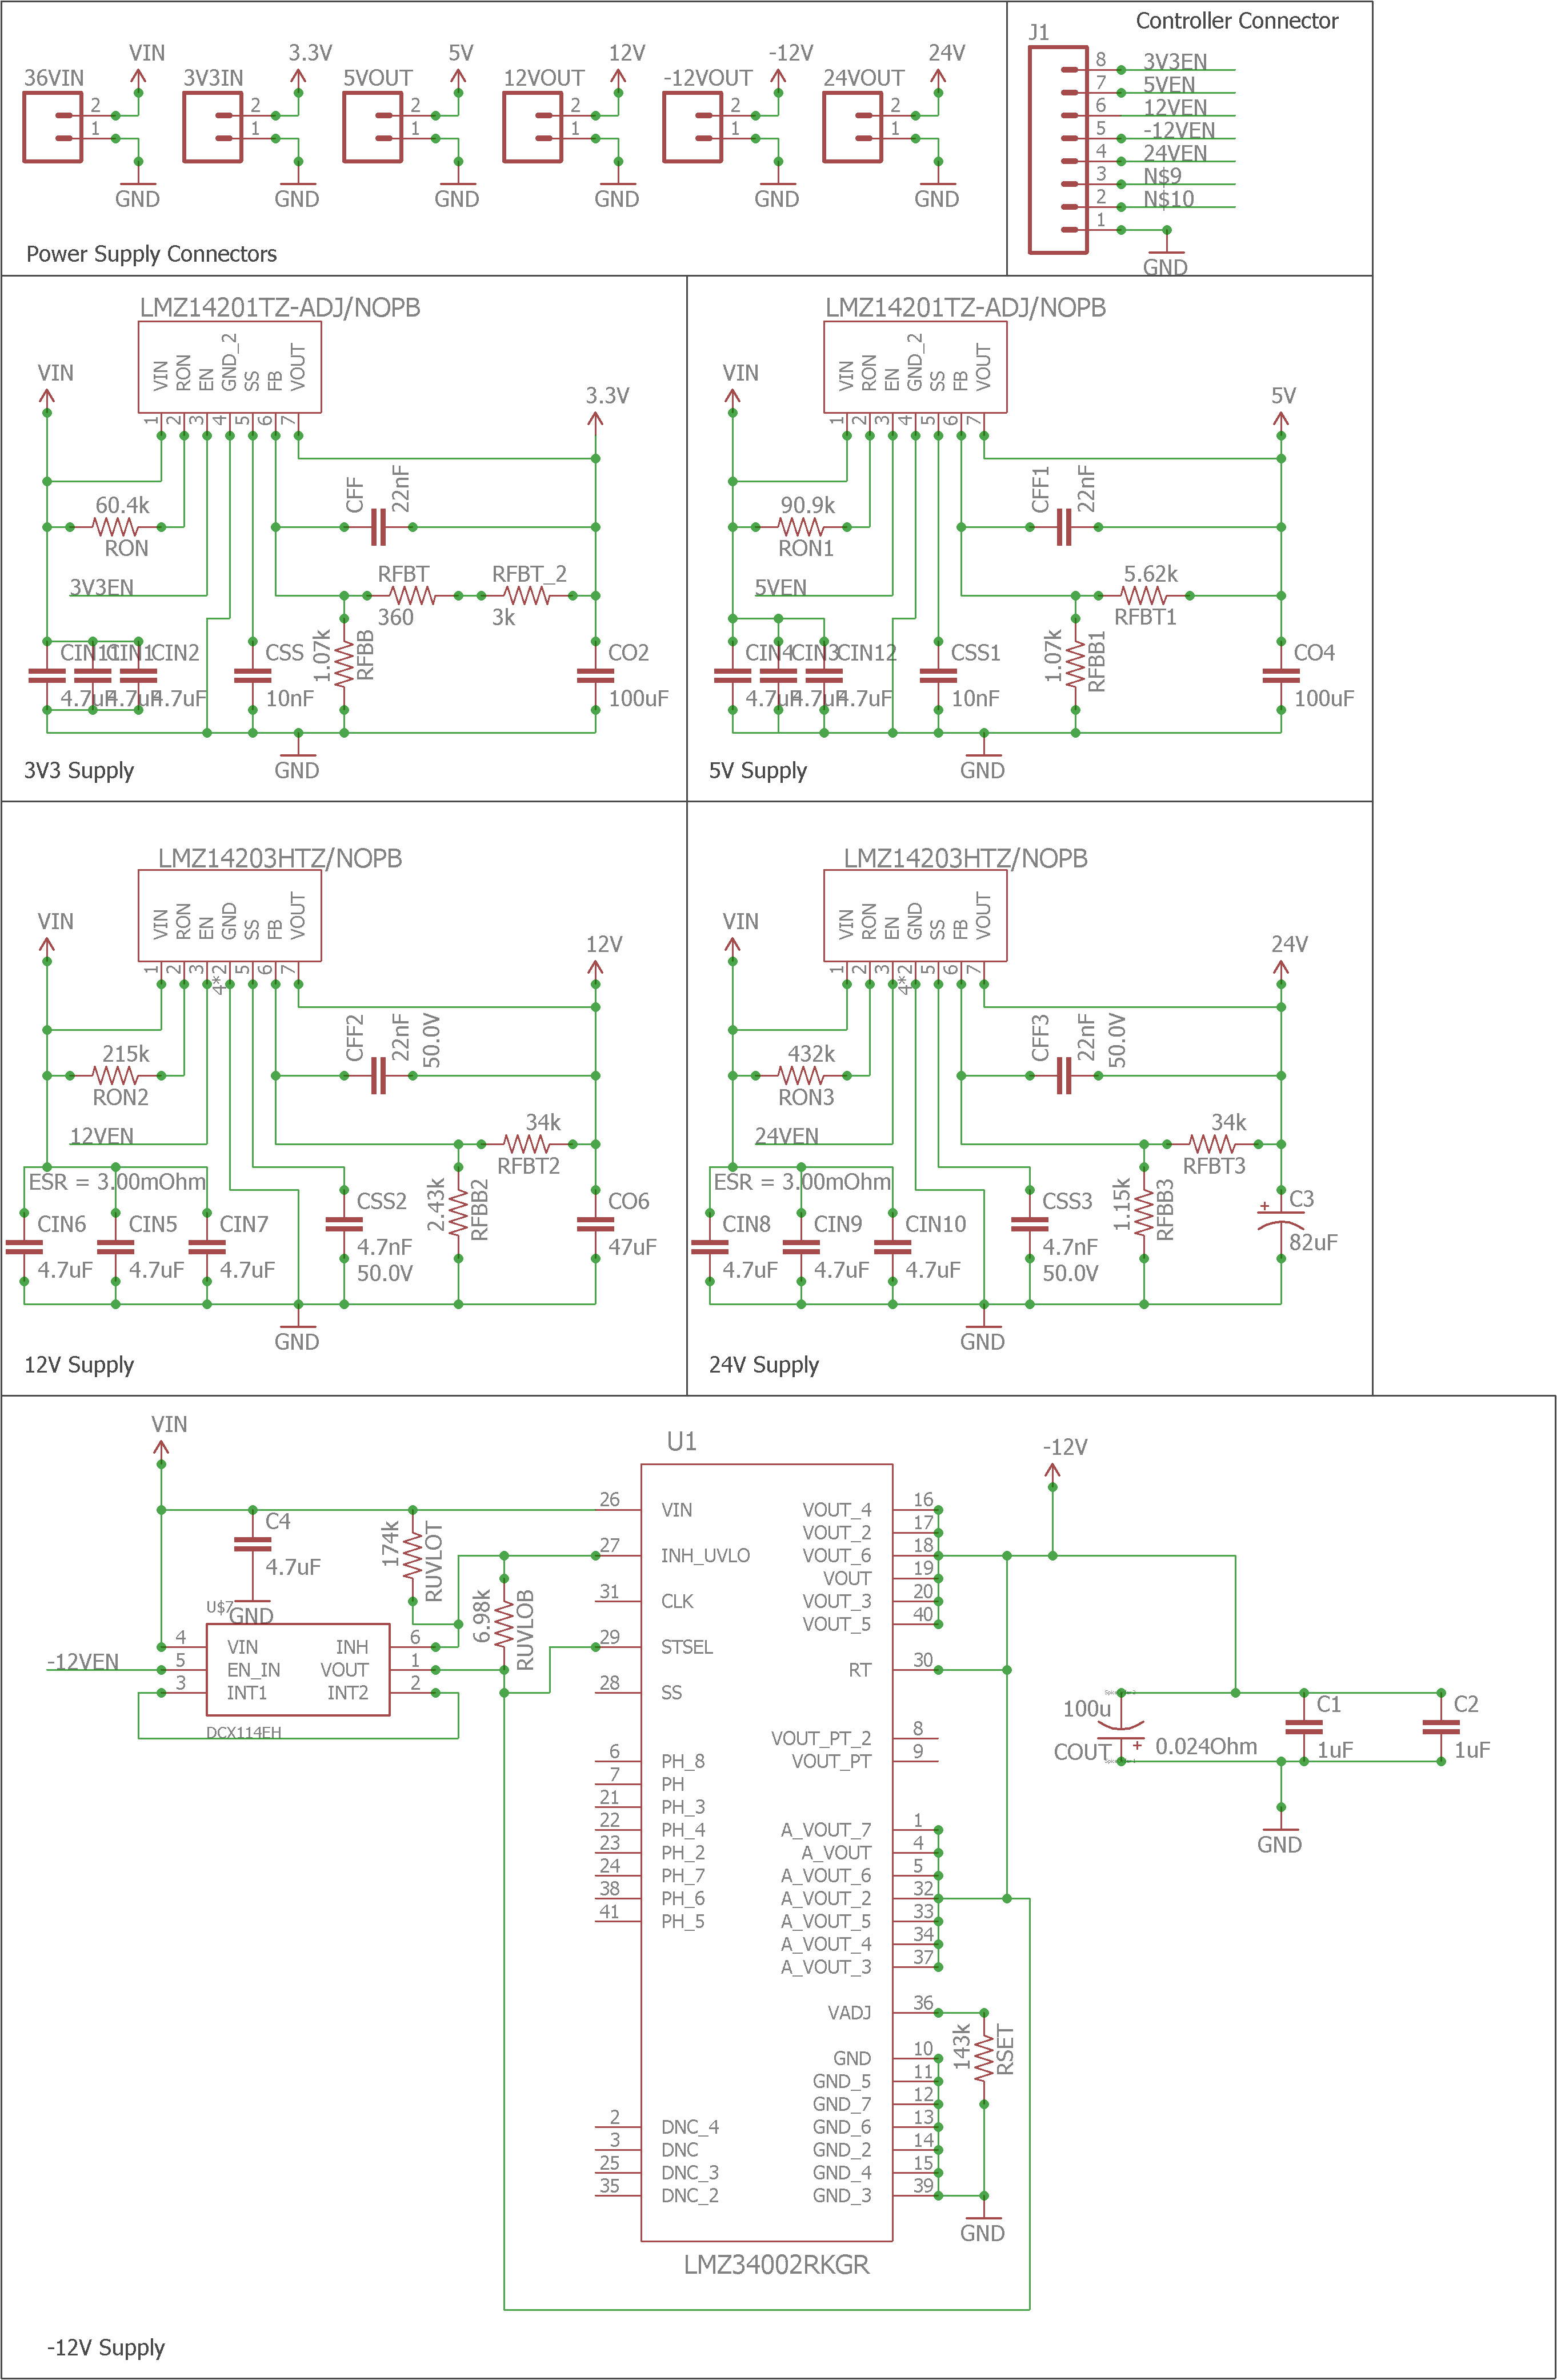 Electronics Workstation DC Power Supply 1: Basic Schematics - Learn CNC